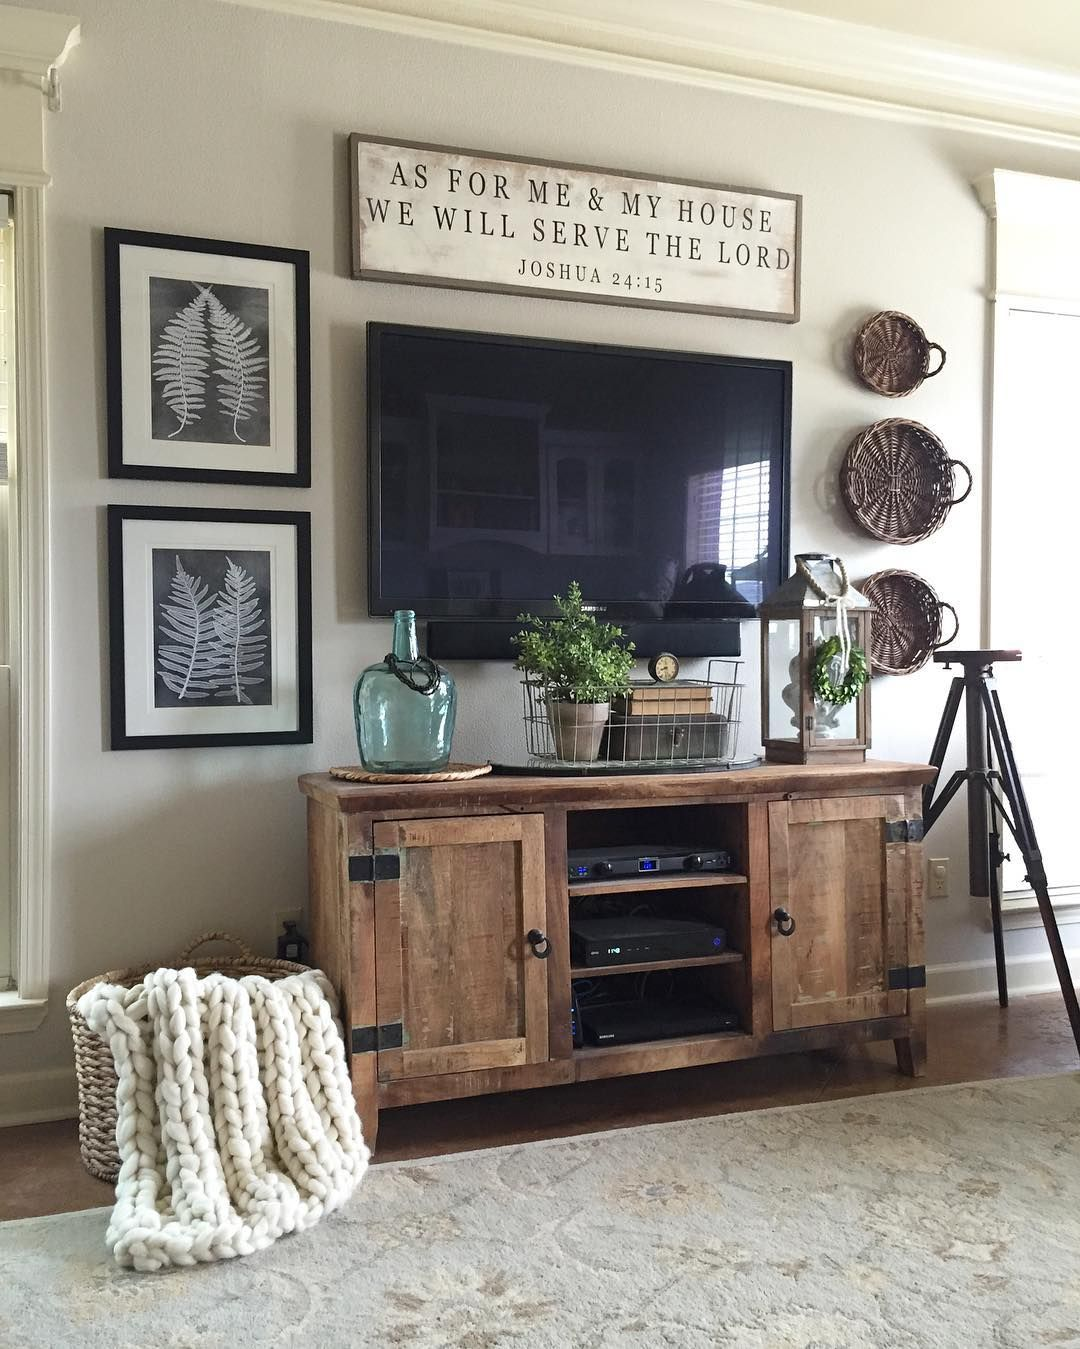 yes you can fit a tv into rustic farmhouse style decor - Rustic Apartment 2016